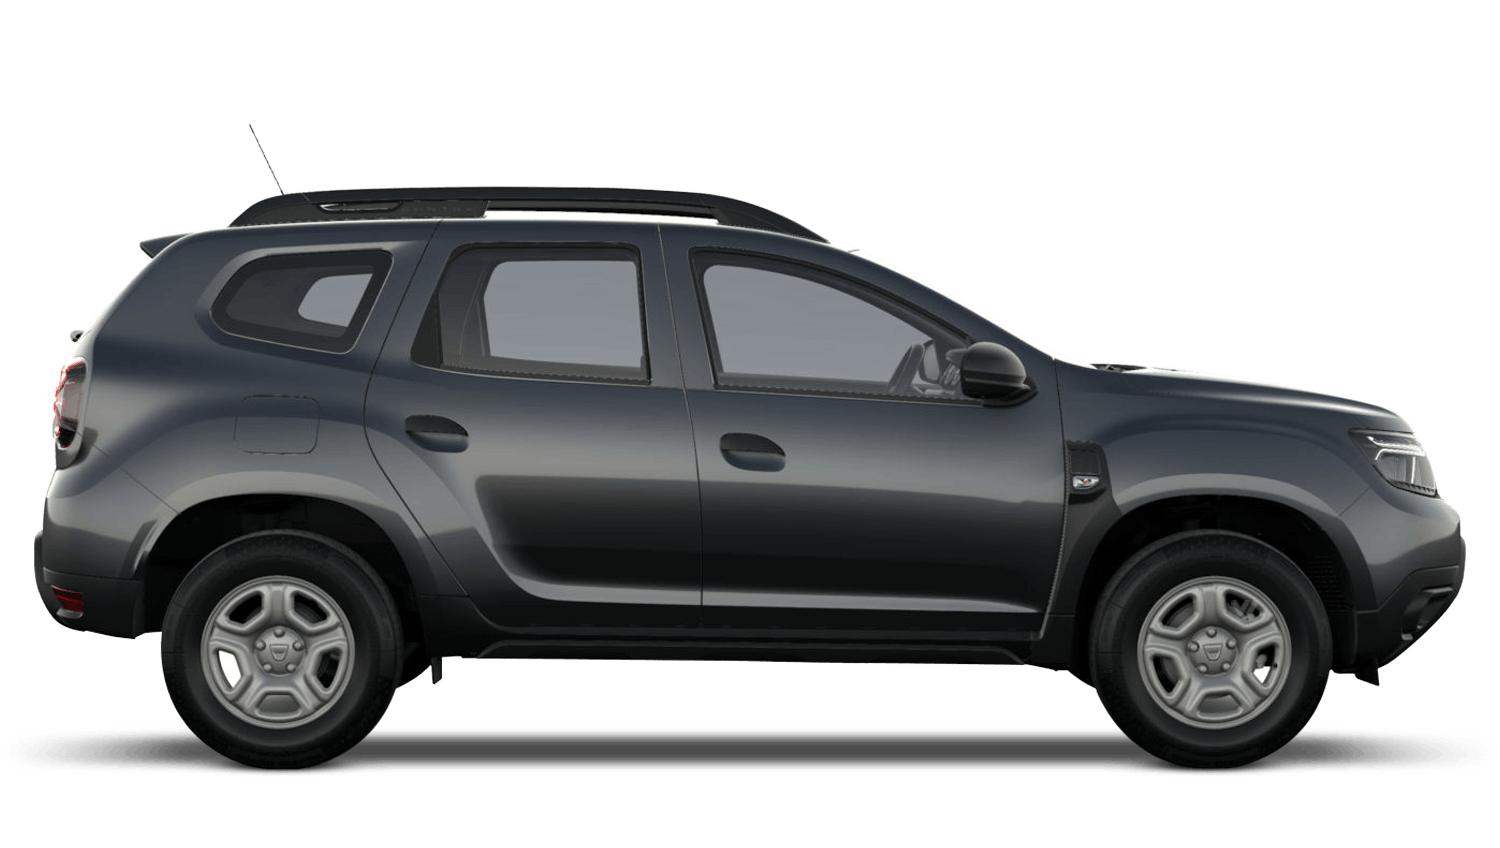 New Dacia Duster TCE 1.0 90